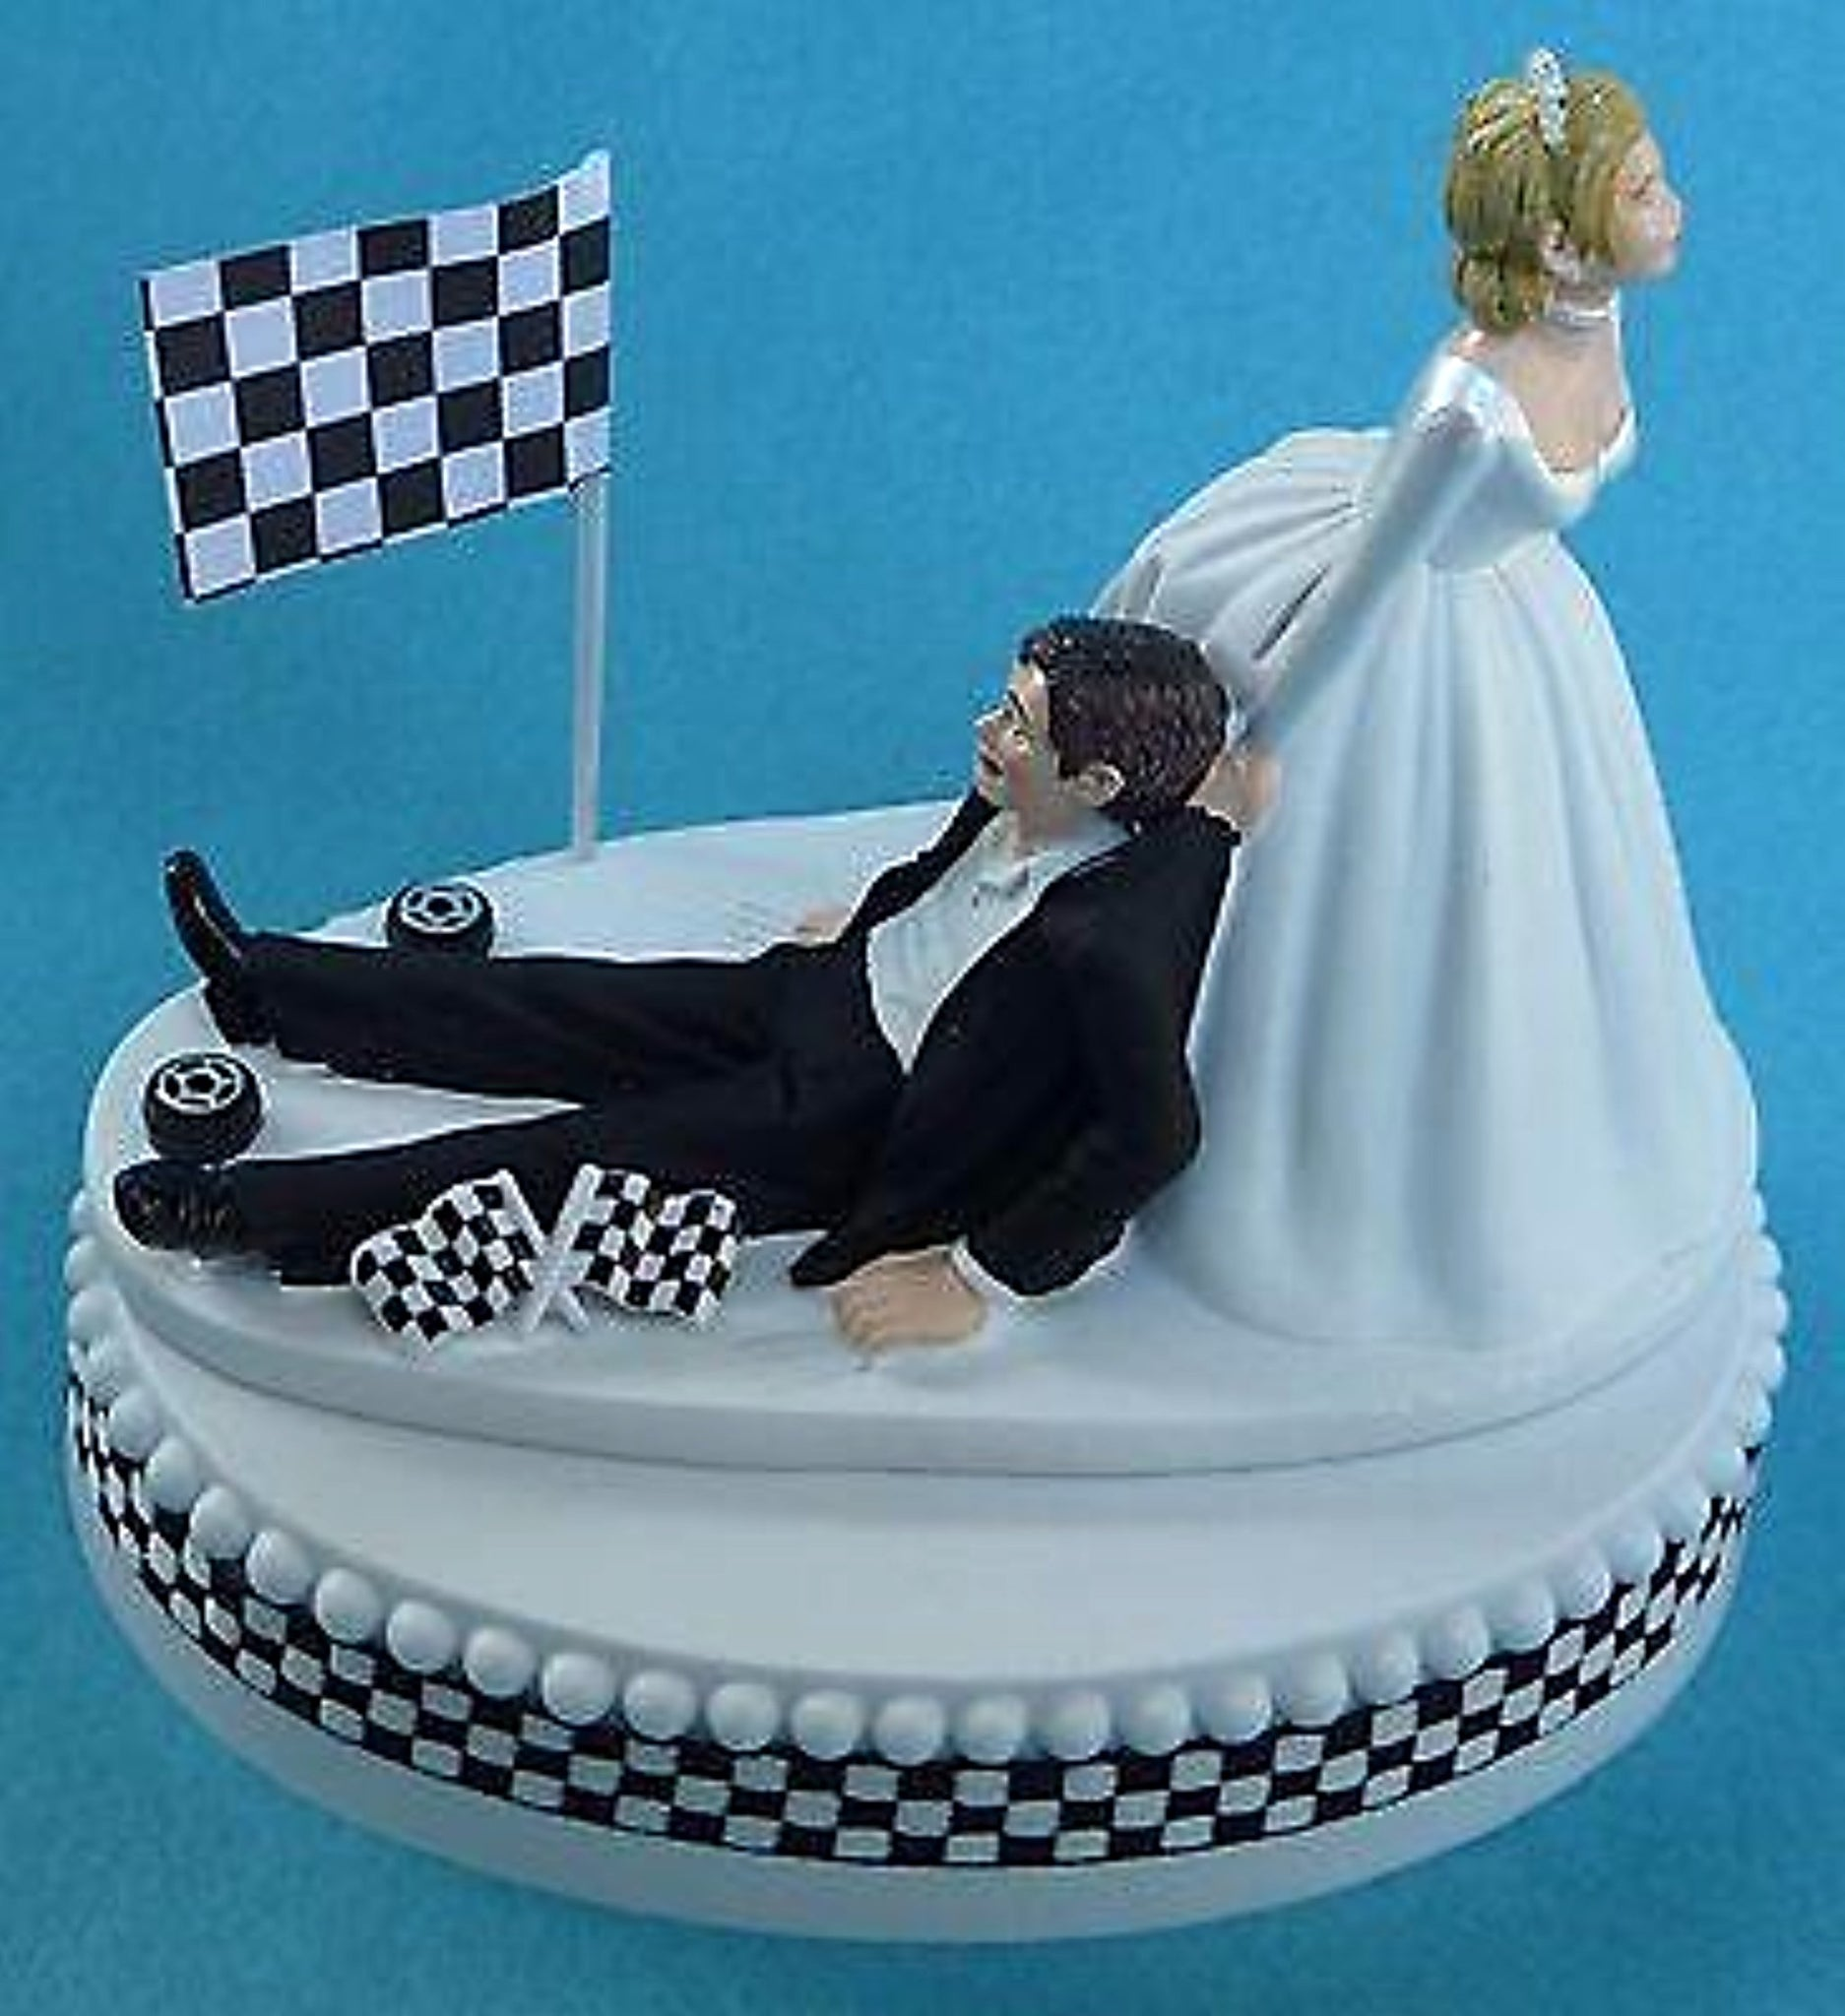 Checkered flag cake topper wedding racing groom's cake fans funny bride dragging groom NASCAR auto sports Fun Wedding Things reception gift idea